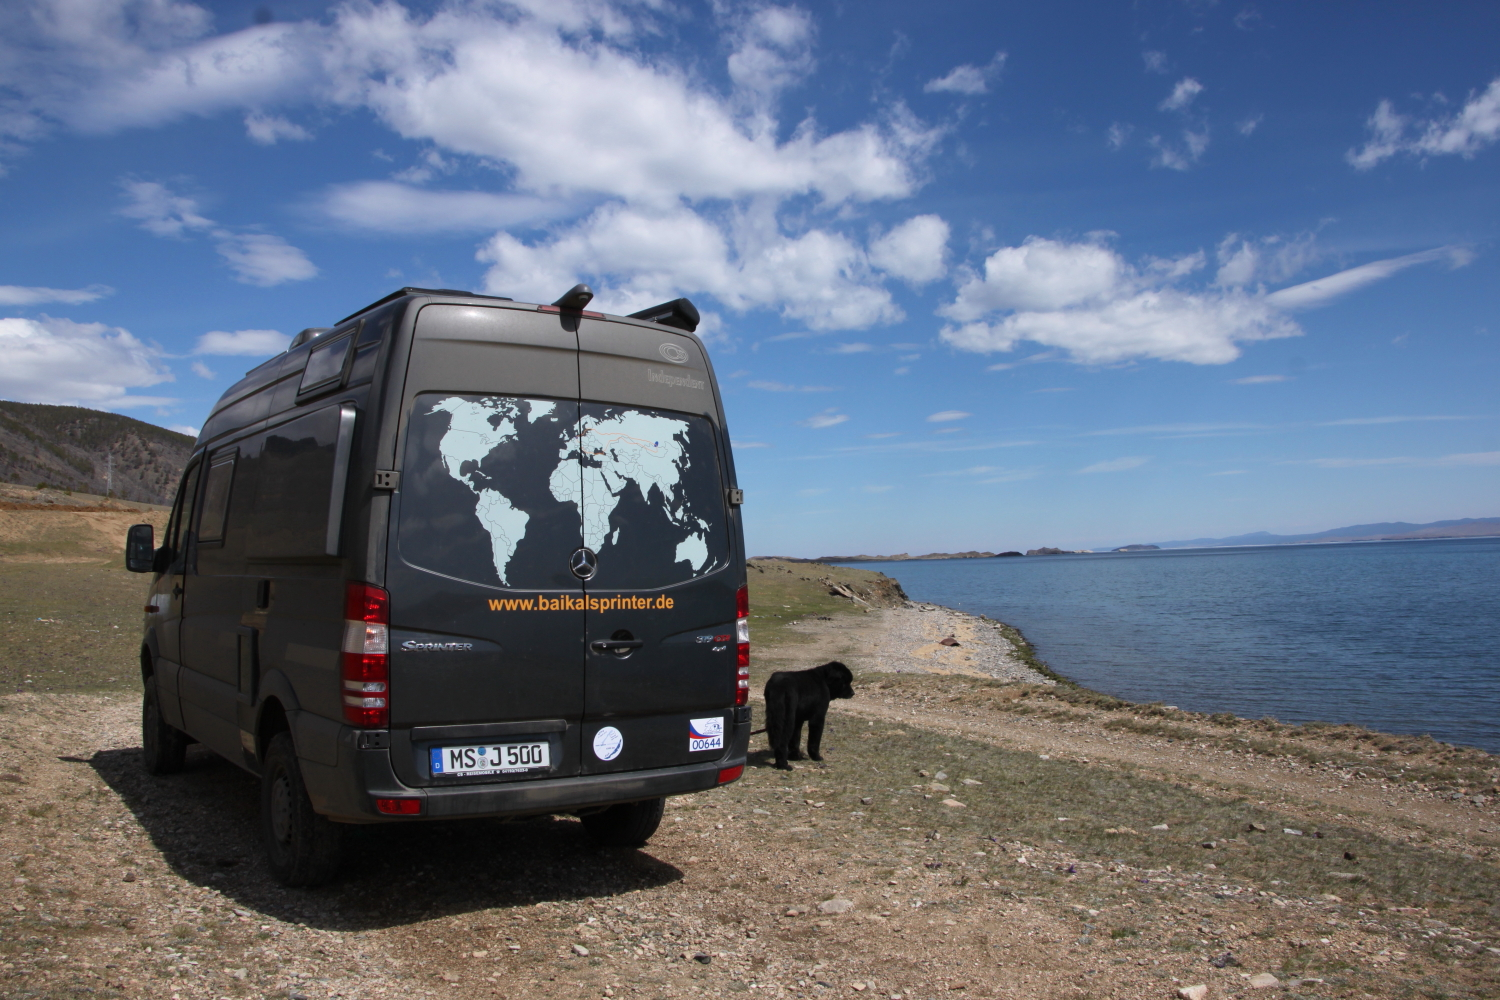 Unser Baikalsprinter am Baikalsee